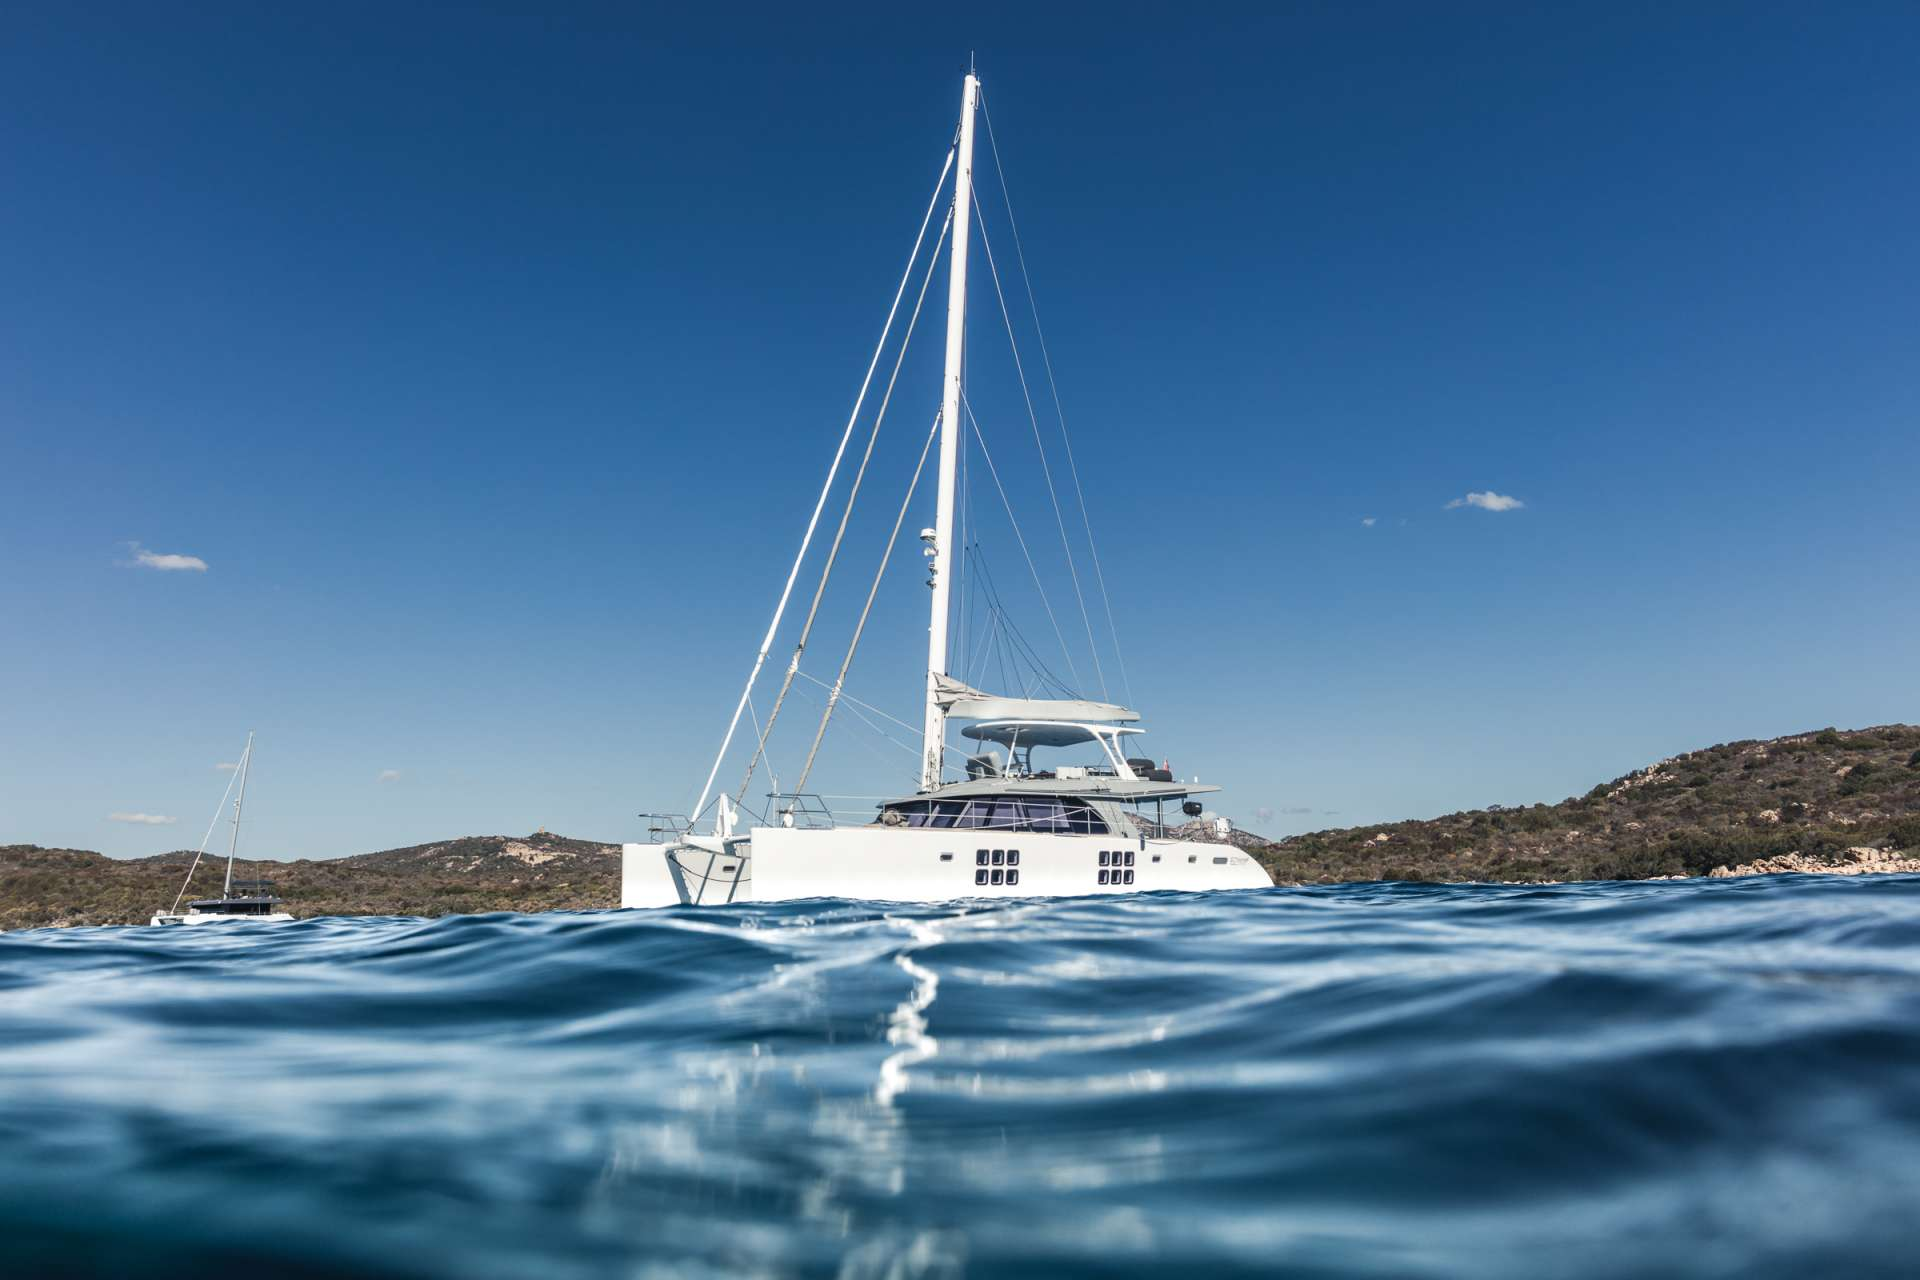 Charter with ADEA on compassyachtcharters.com